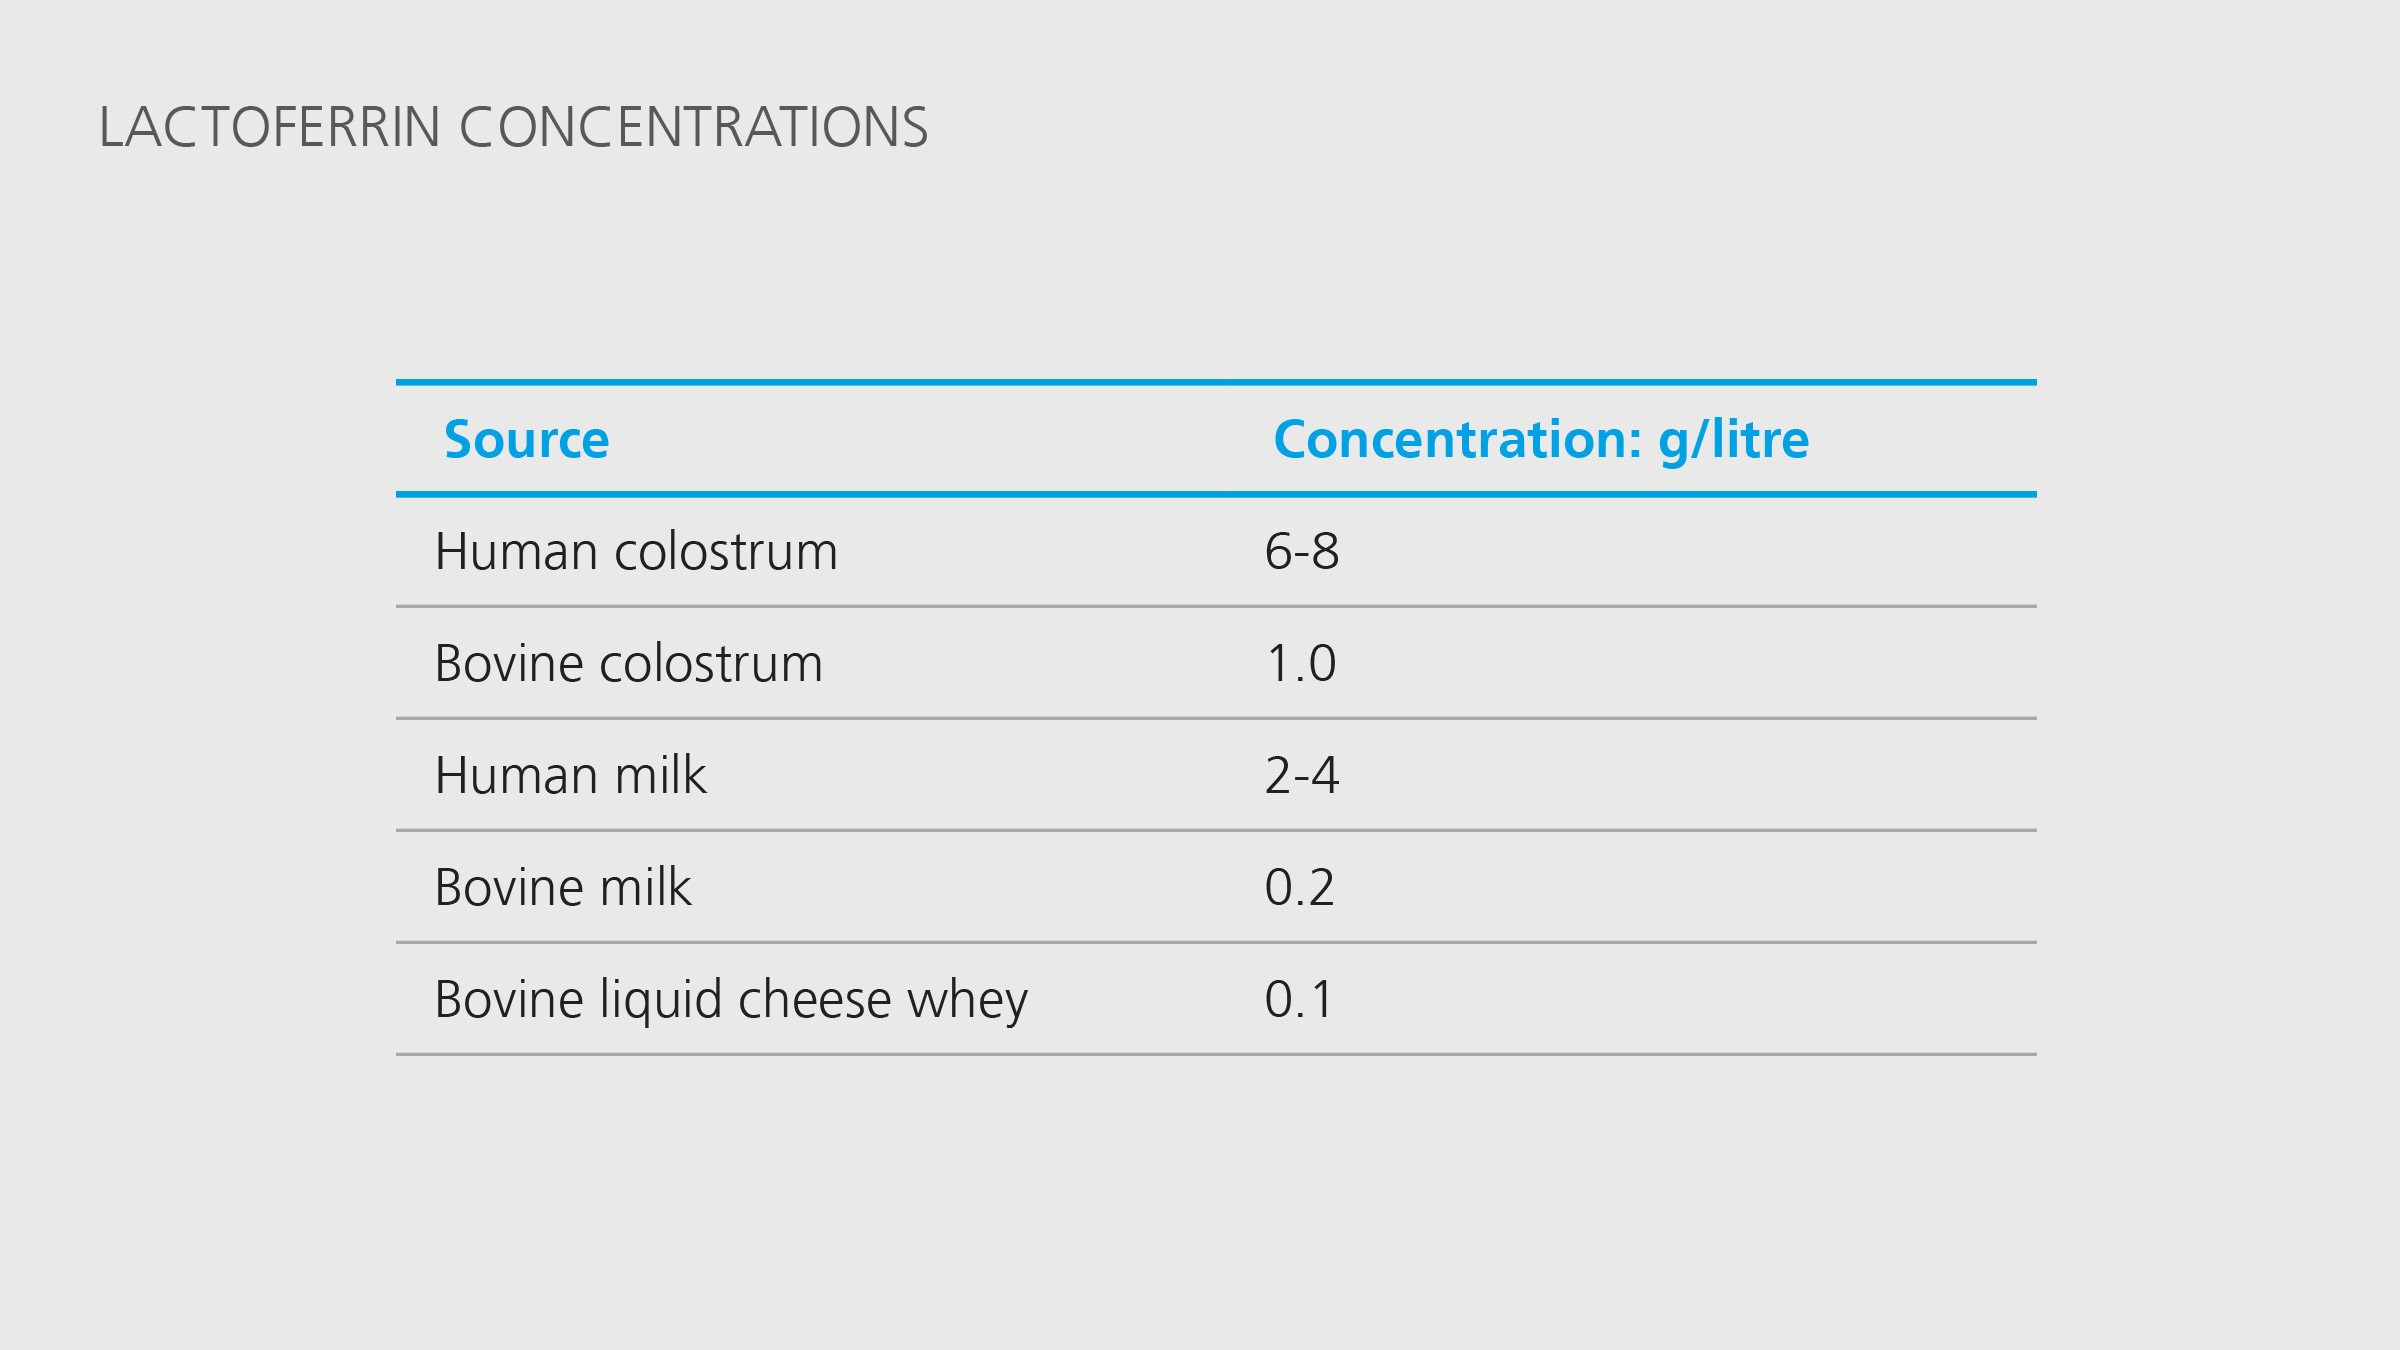 Lactoferrin concentrations